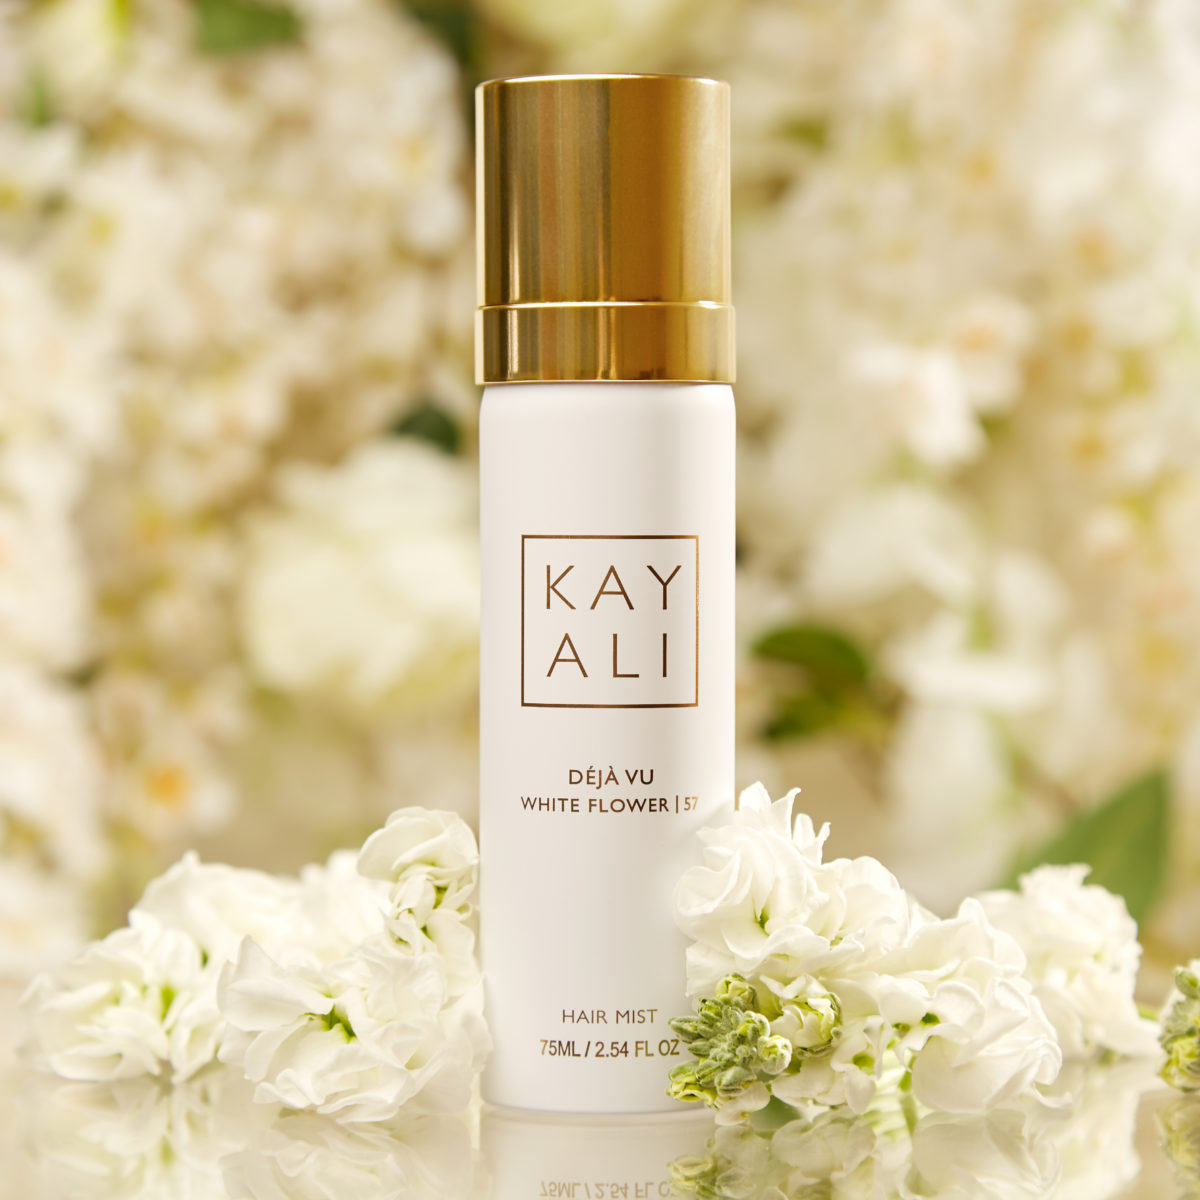 KAYALI Déjà Vu White Flower | 57 Hair Mist